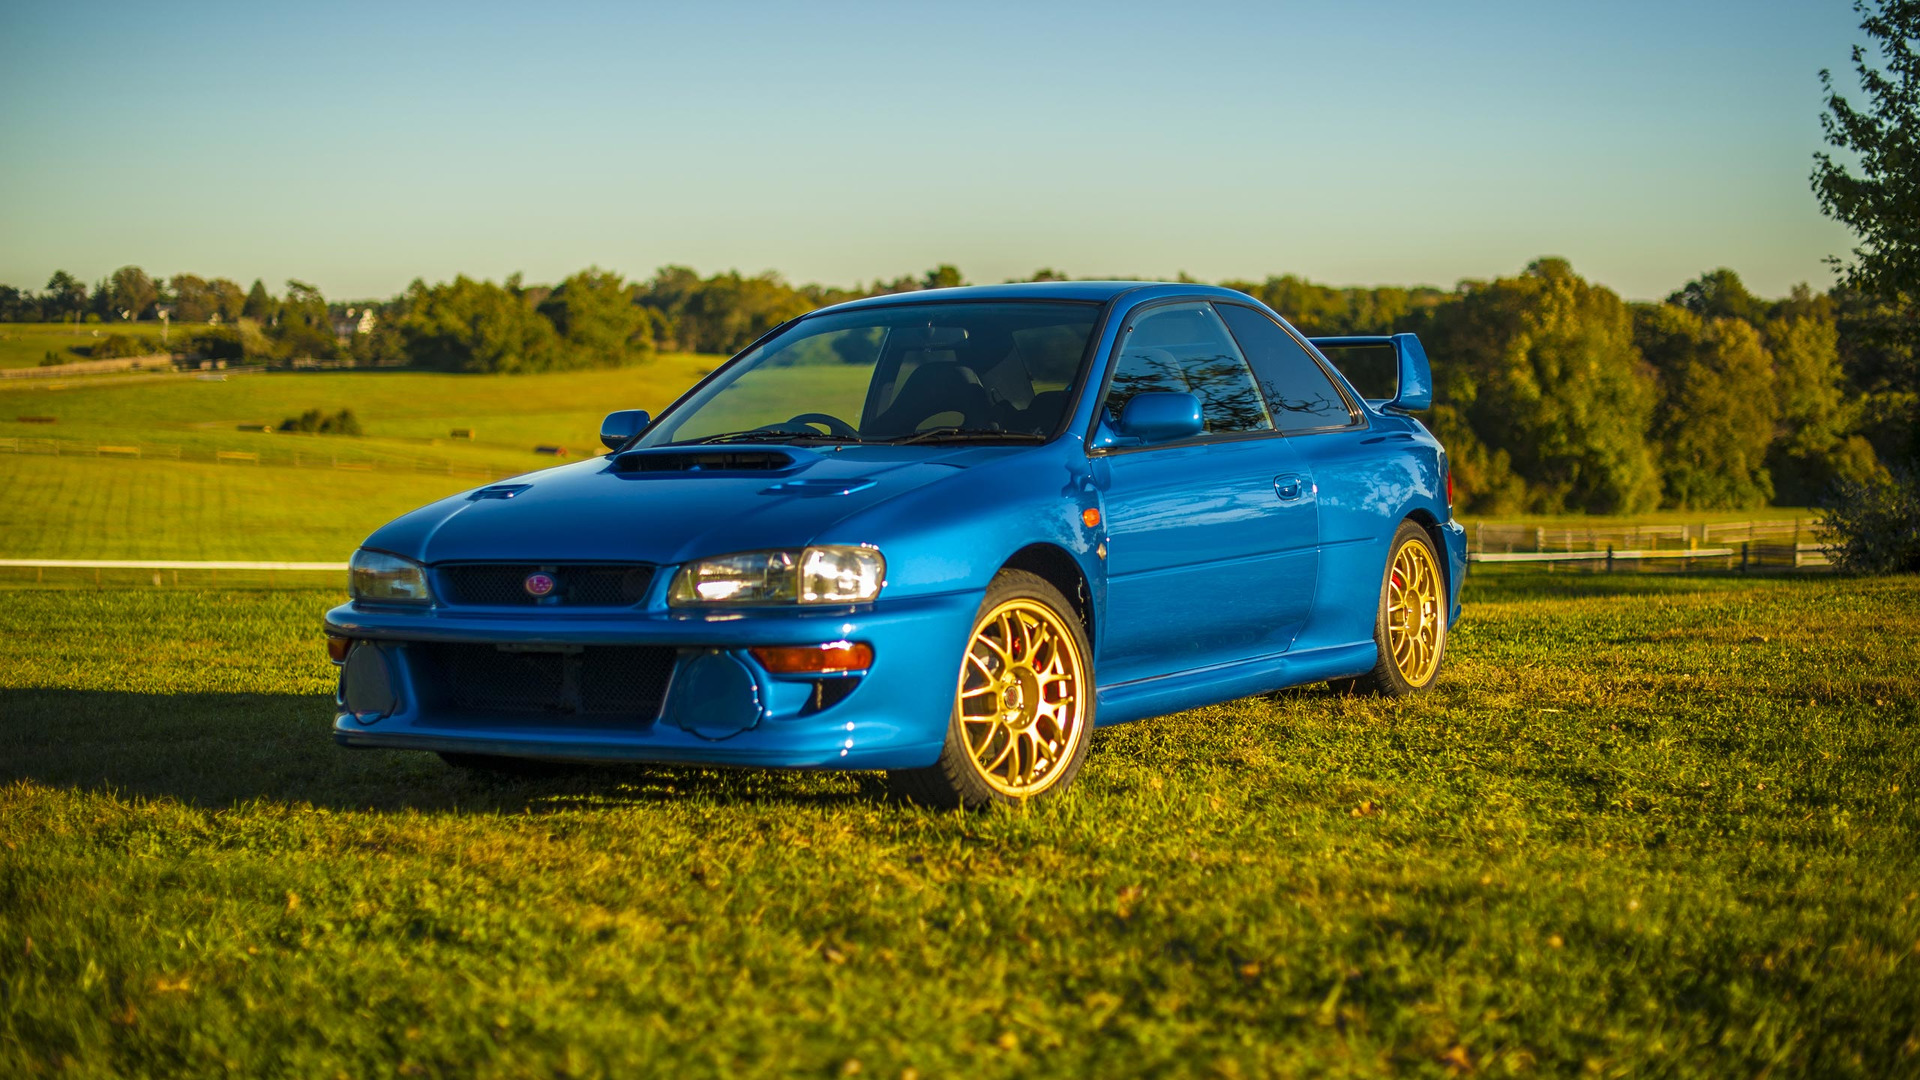 A Holy Grail Subaru Impreza 22b Sti Is Up For Sale Name Of The In Born To Race